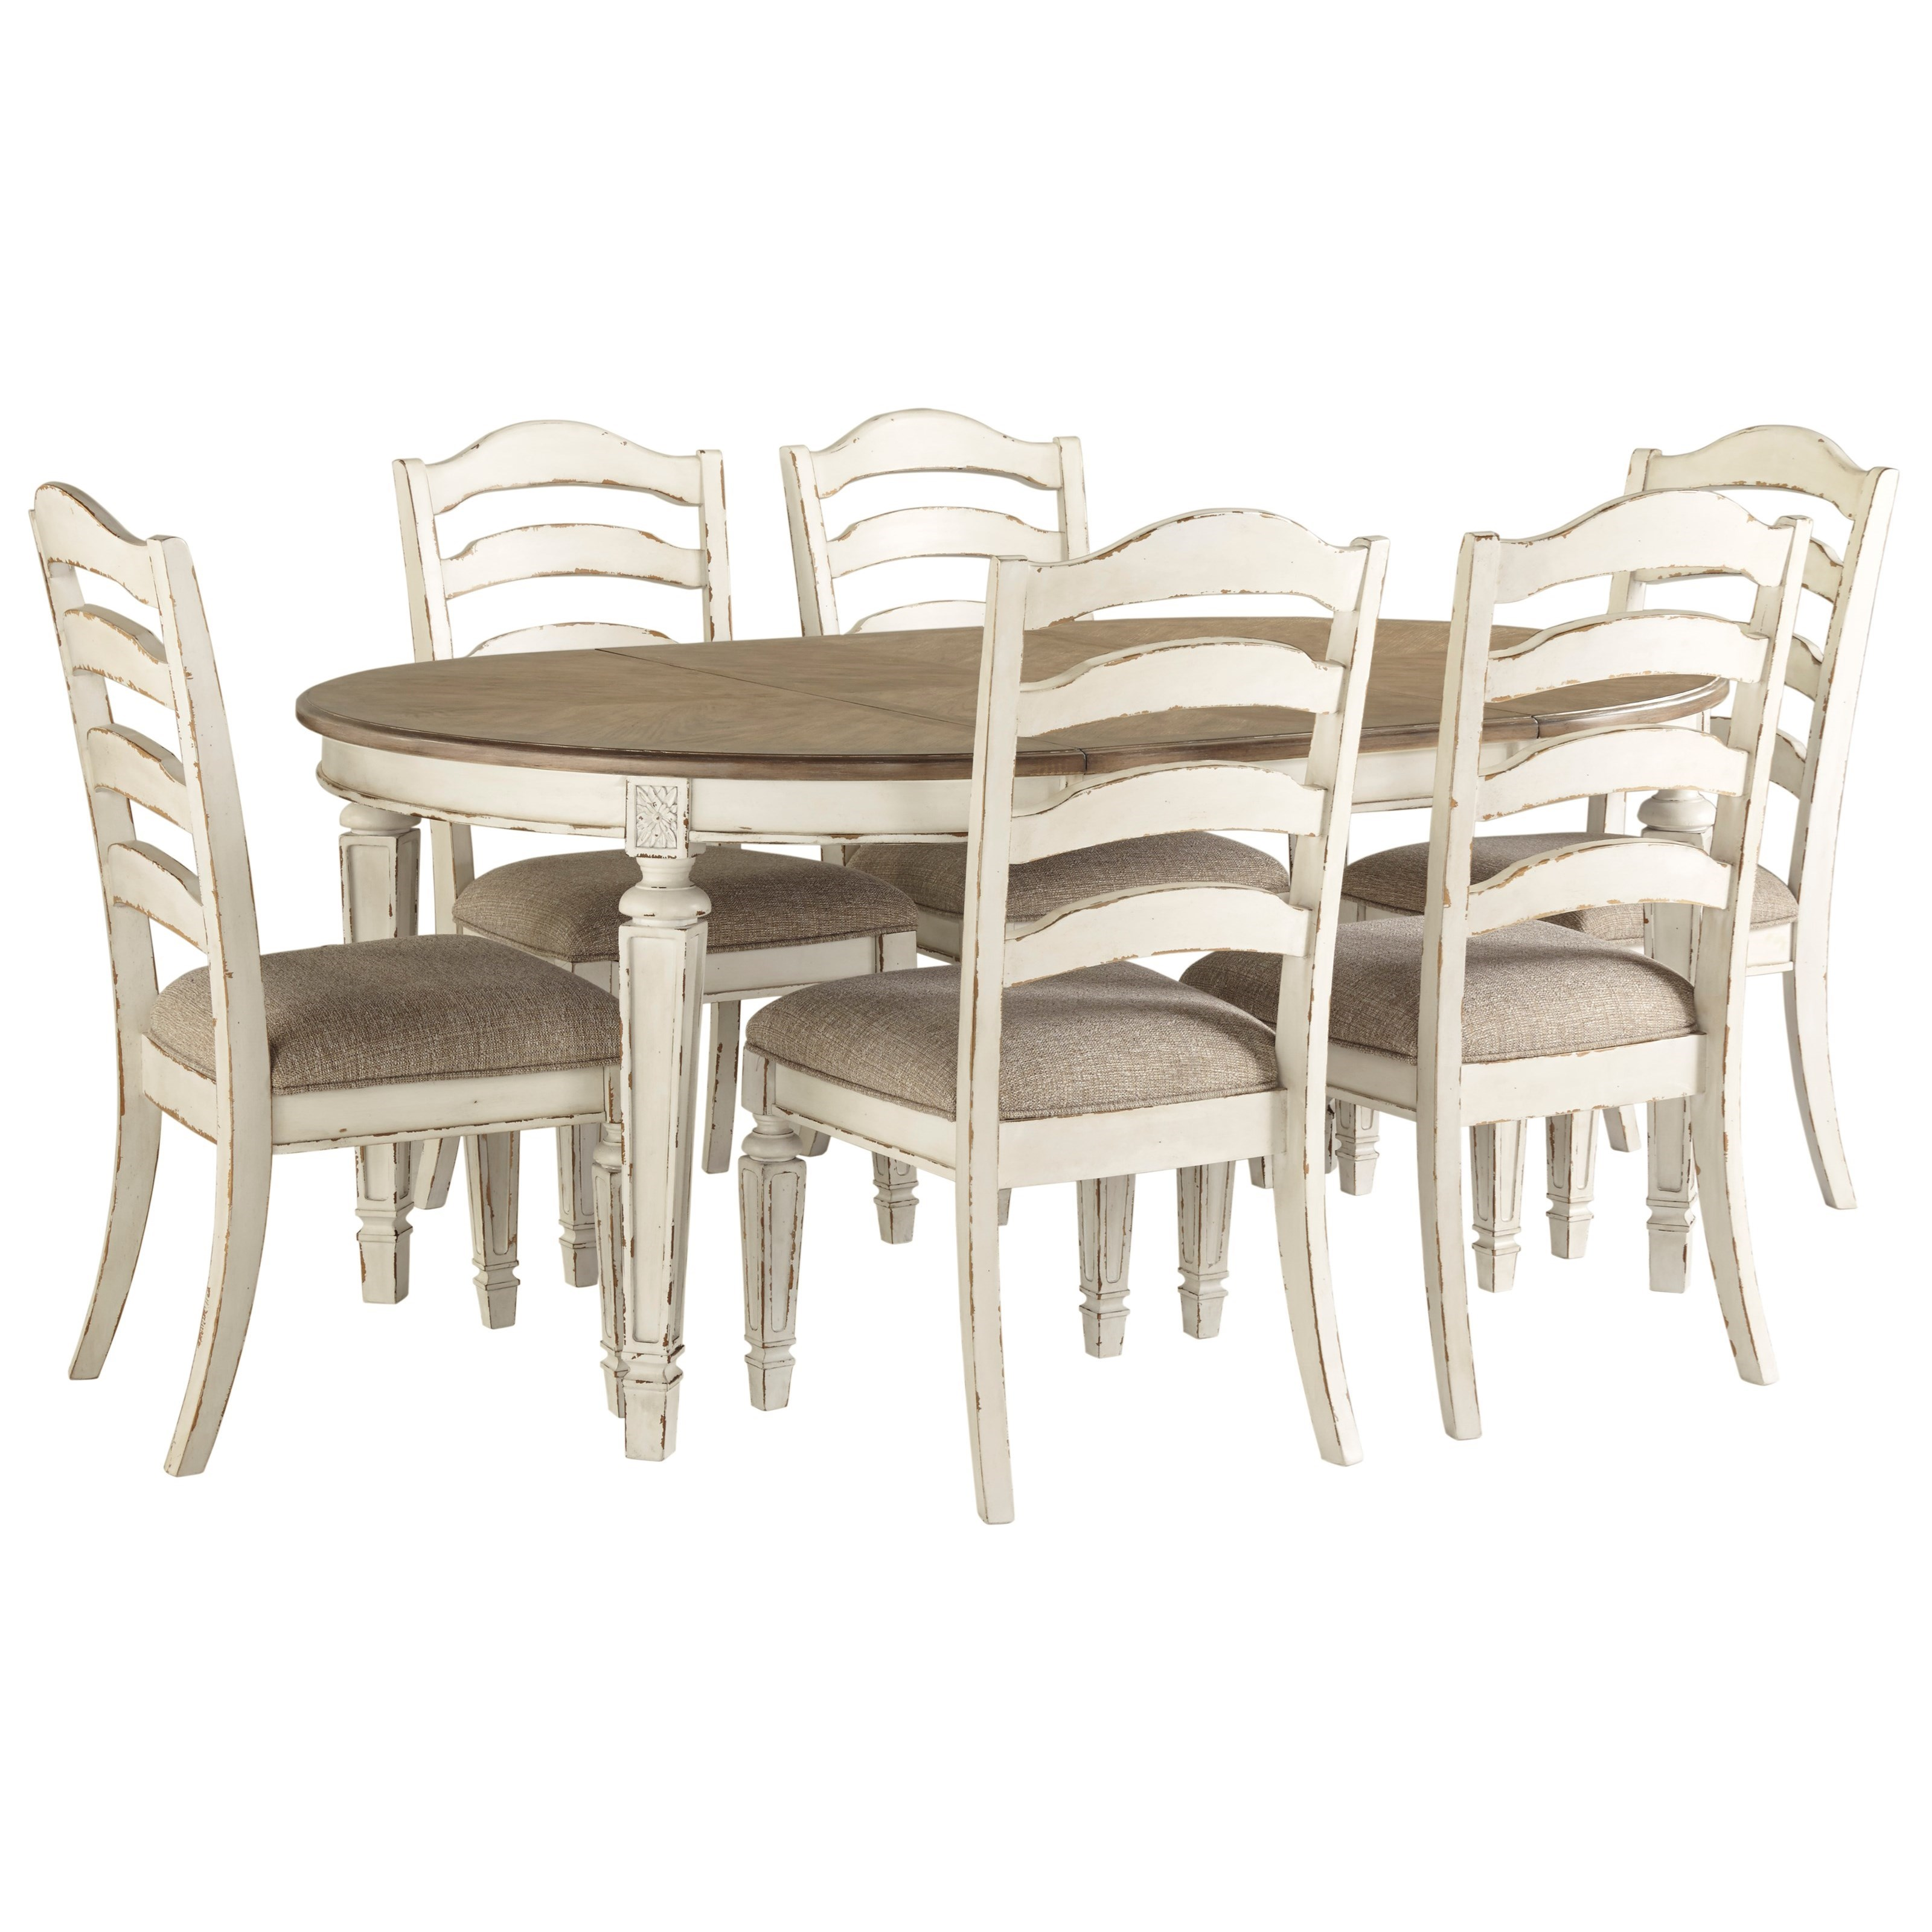 Renee 7-Piece Table and Chair Set at Rotmans